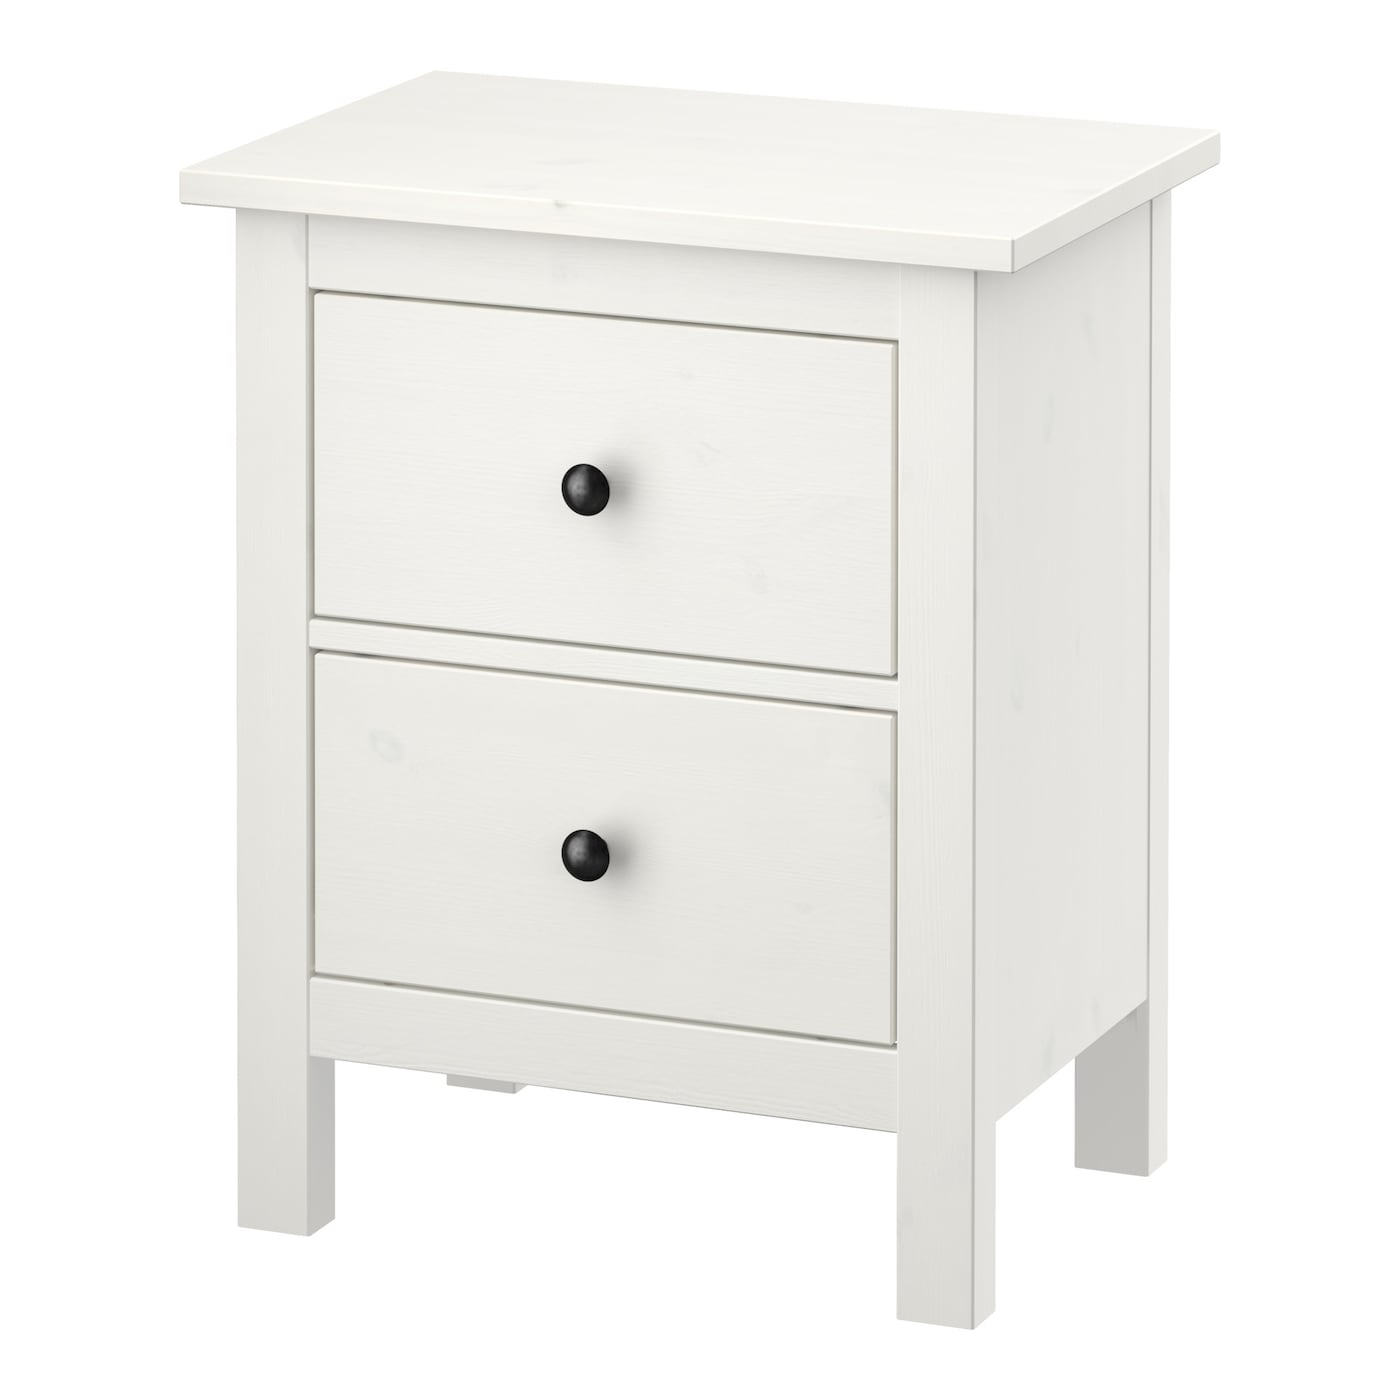 hemnes chest of 2 drawers white stain 54 x 66 cm ikea. Black Bedroom Furniture Sets. Home Design Ideas